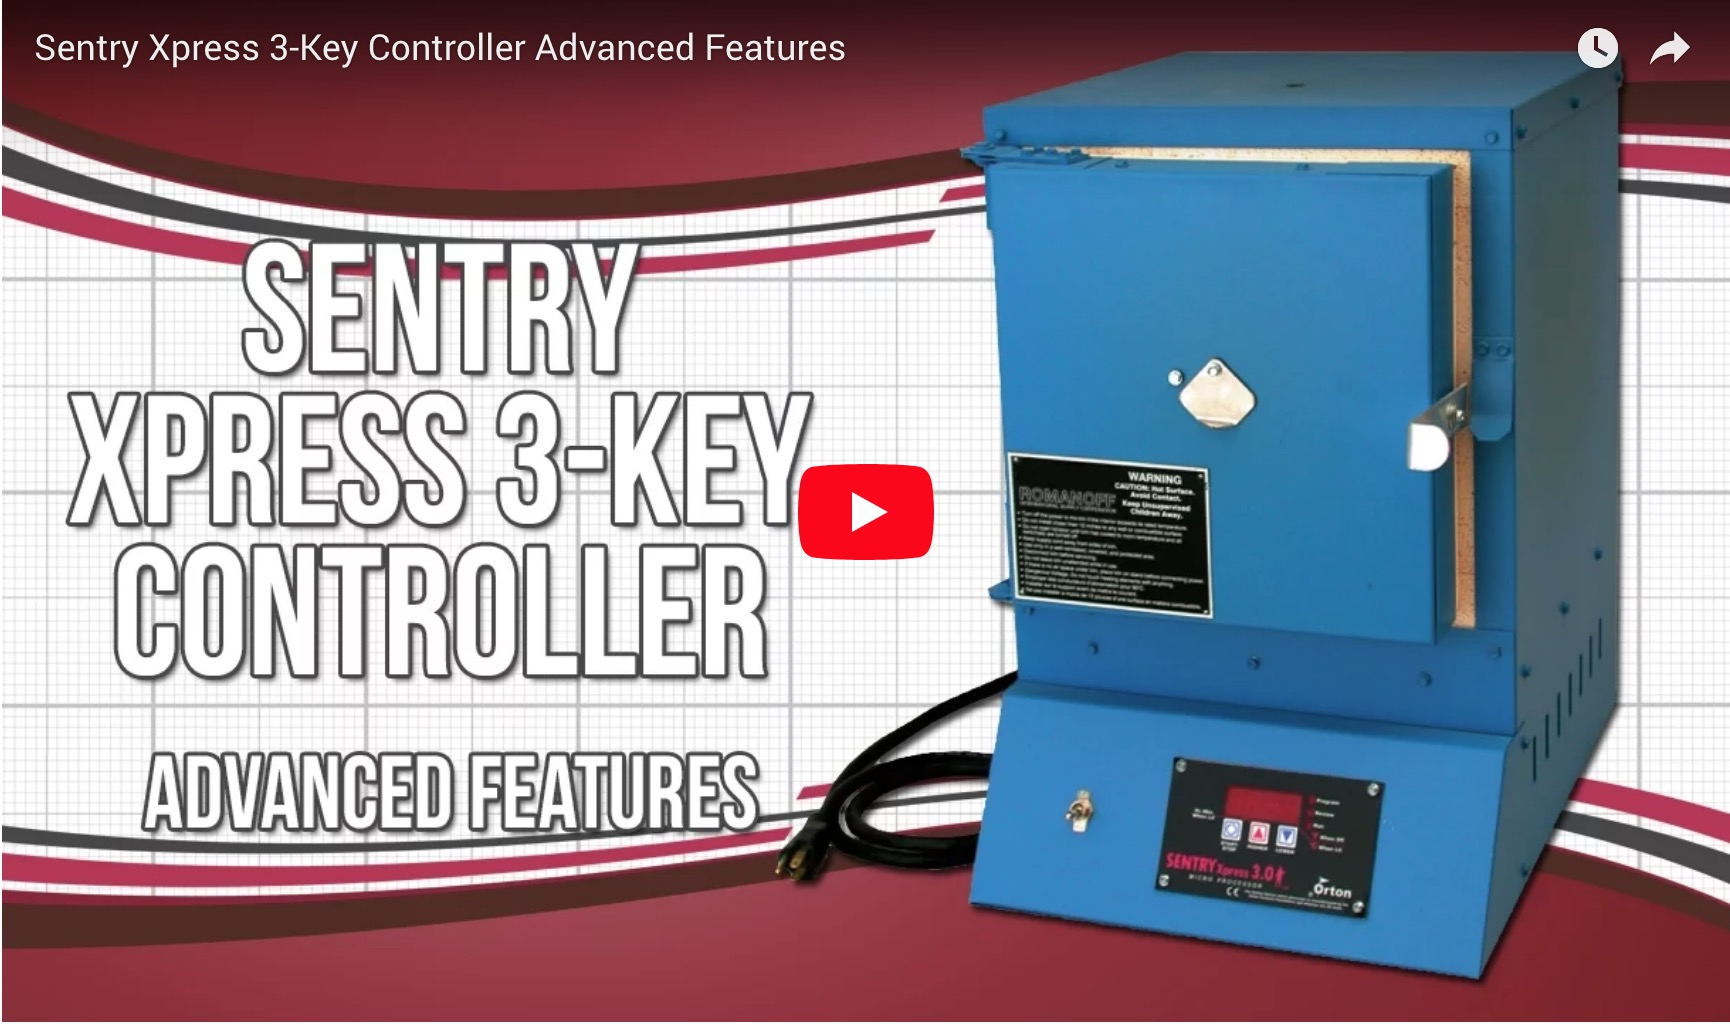 Sentry Xpress 3-Key Controller Advanced Features